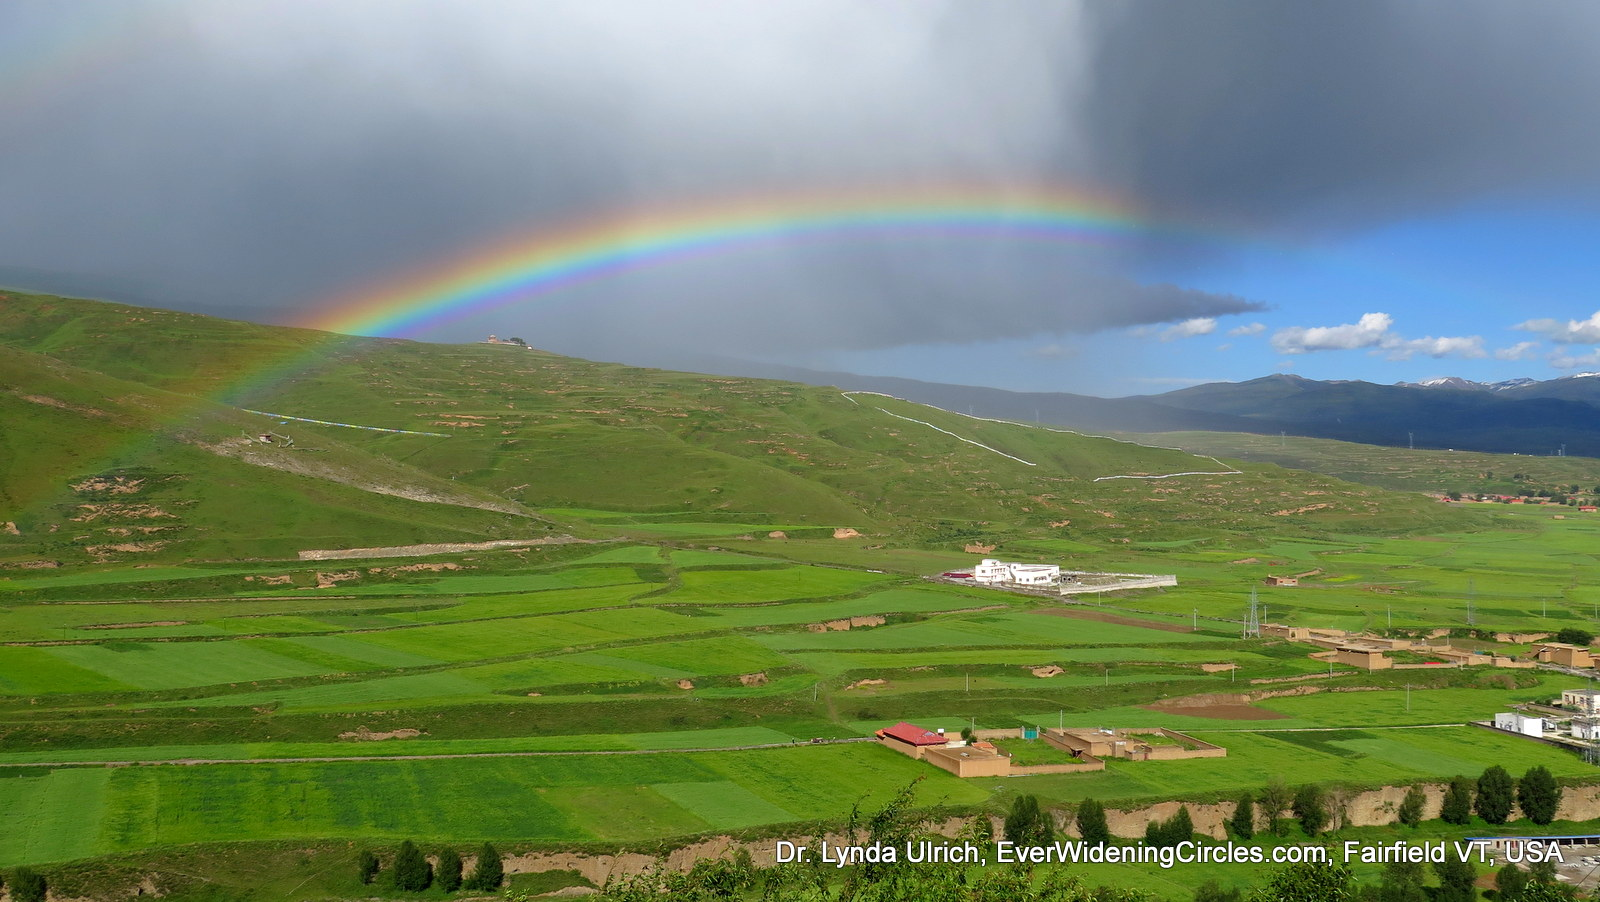 Image: thankful for the rainbow that appeared in Tibet